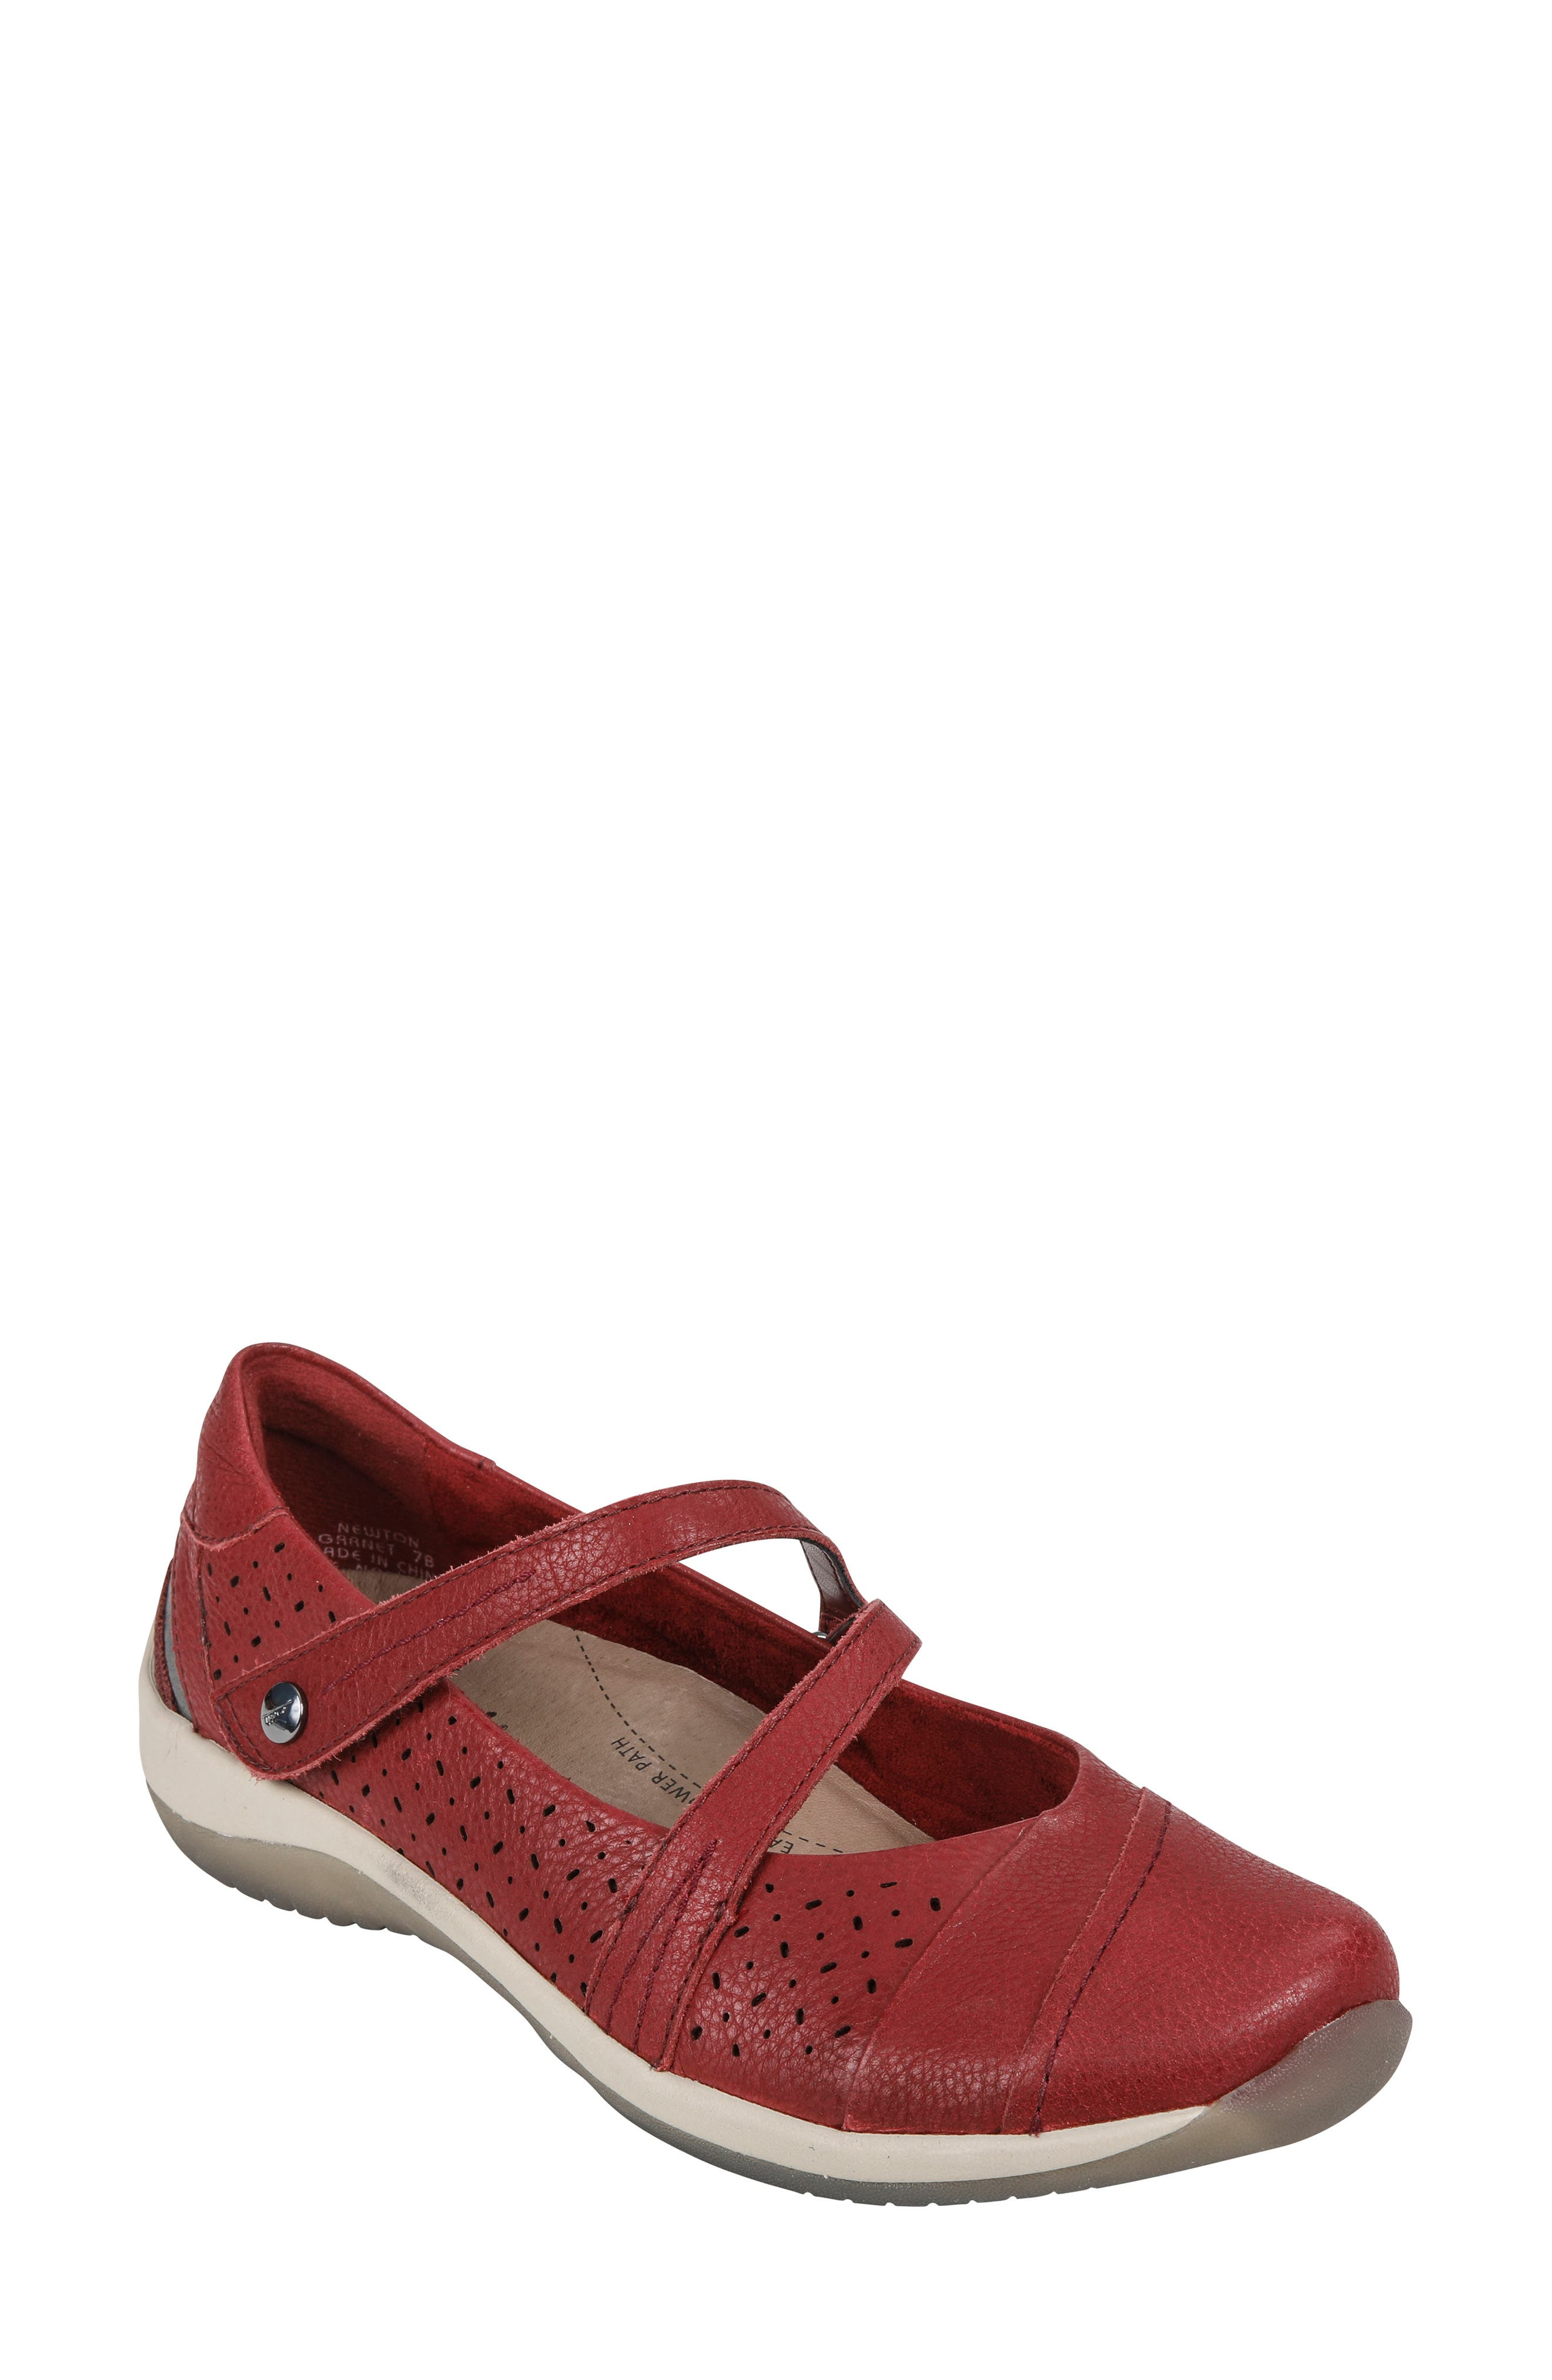 Earth Newton Mary Jane Flat, Red